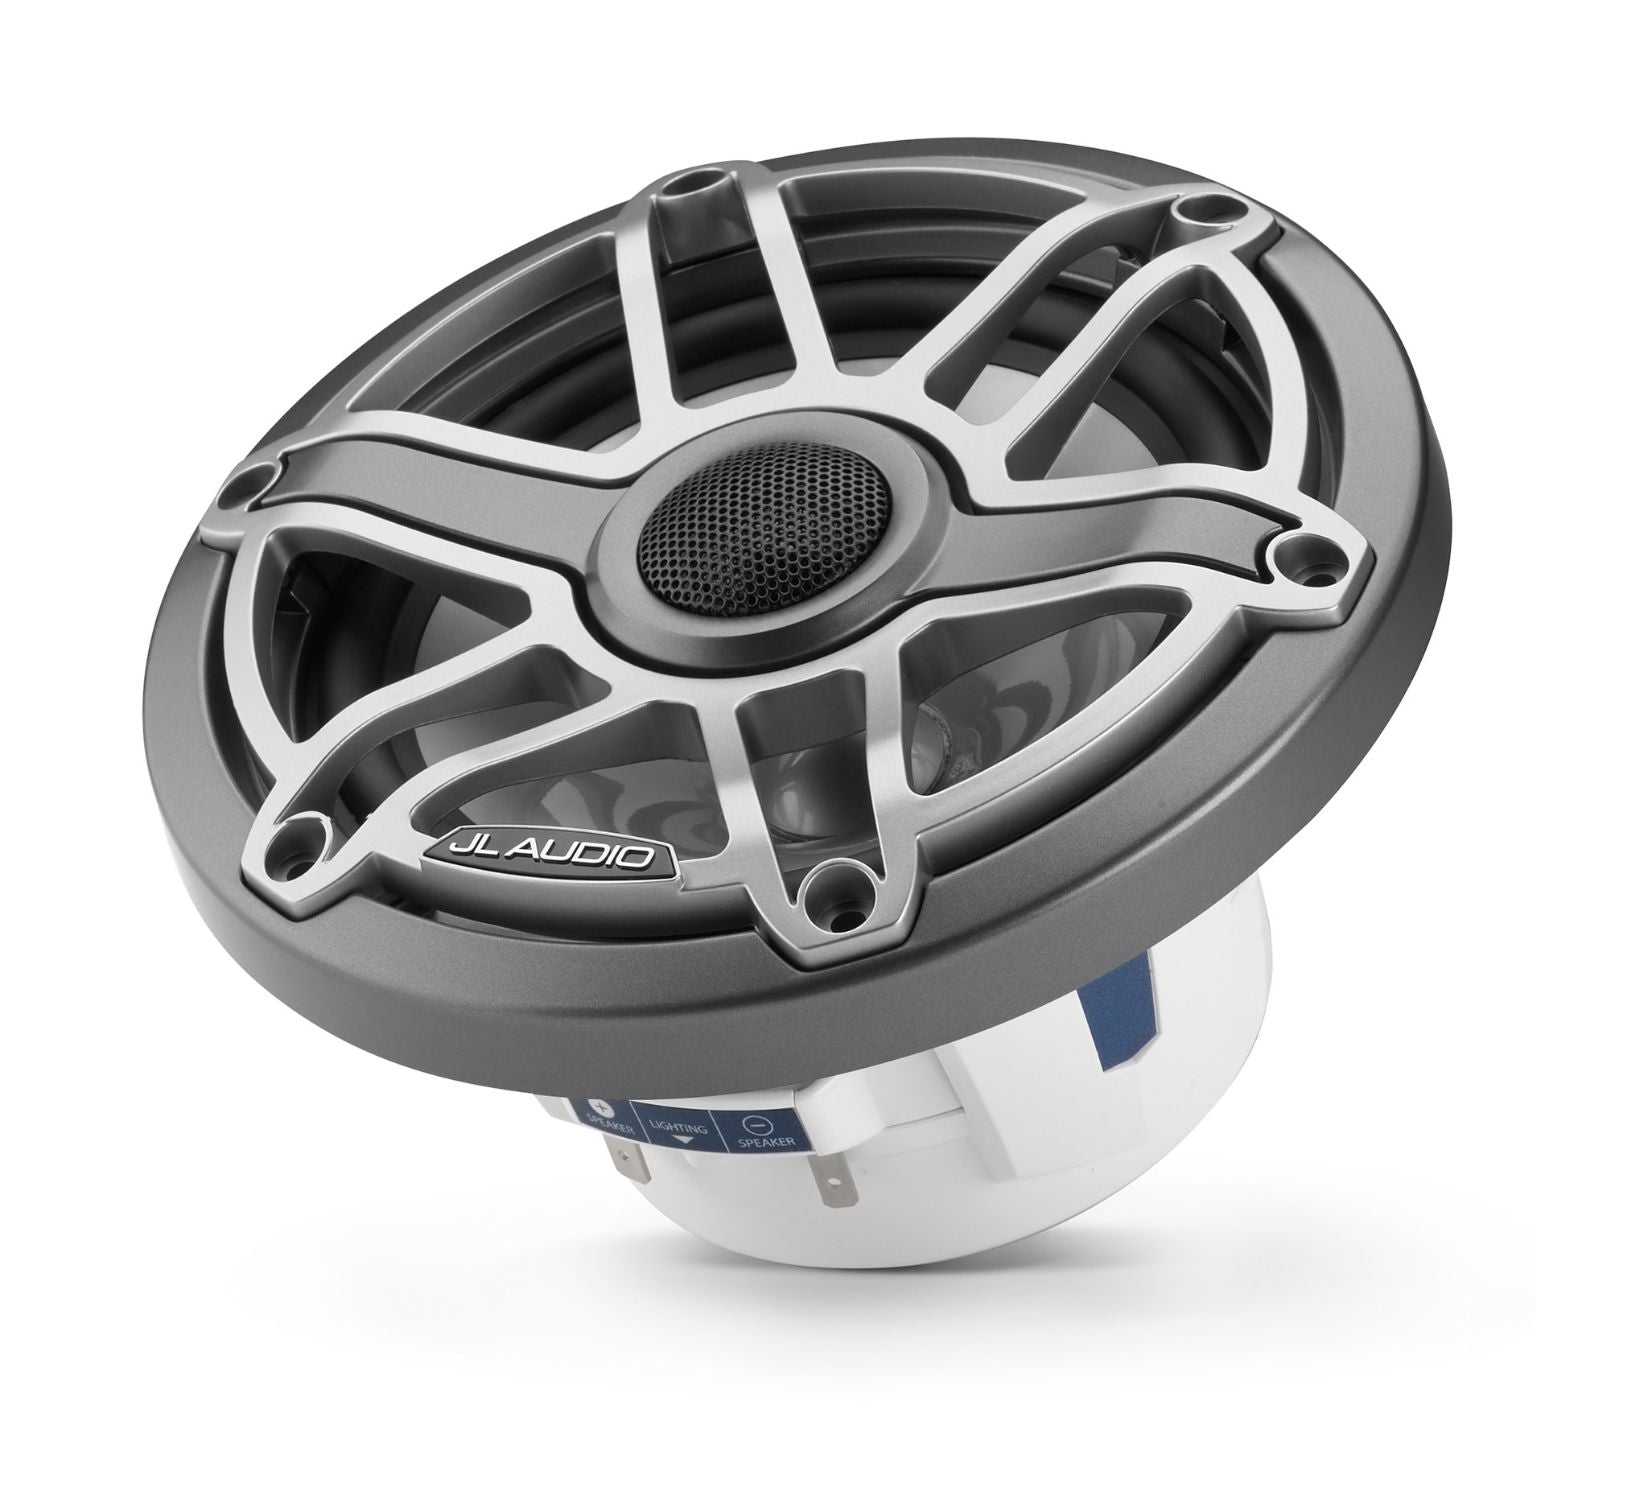 M6-650X-S-GmTi Coaxial Speaker Tilted